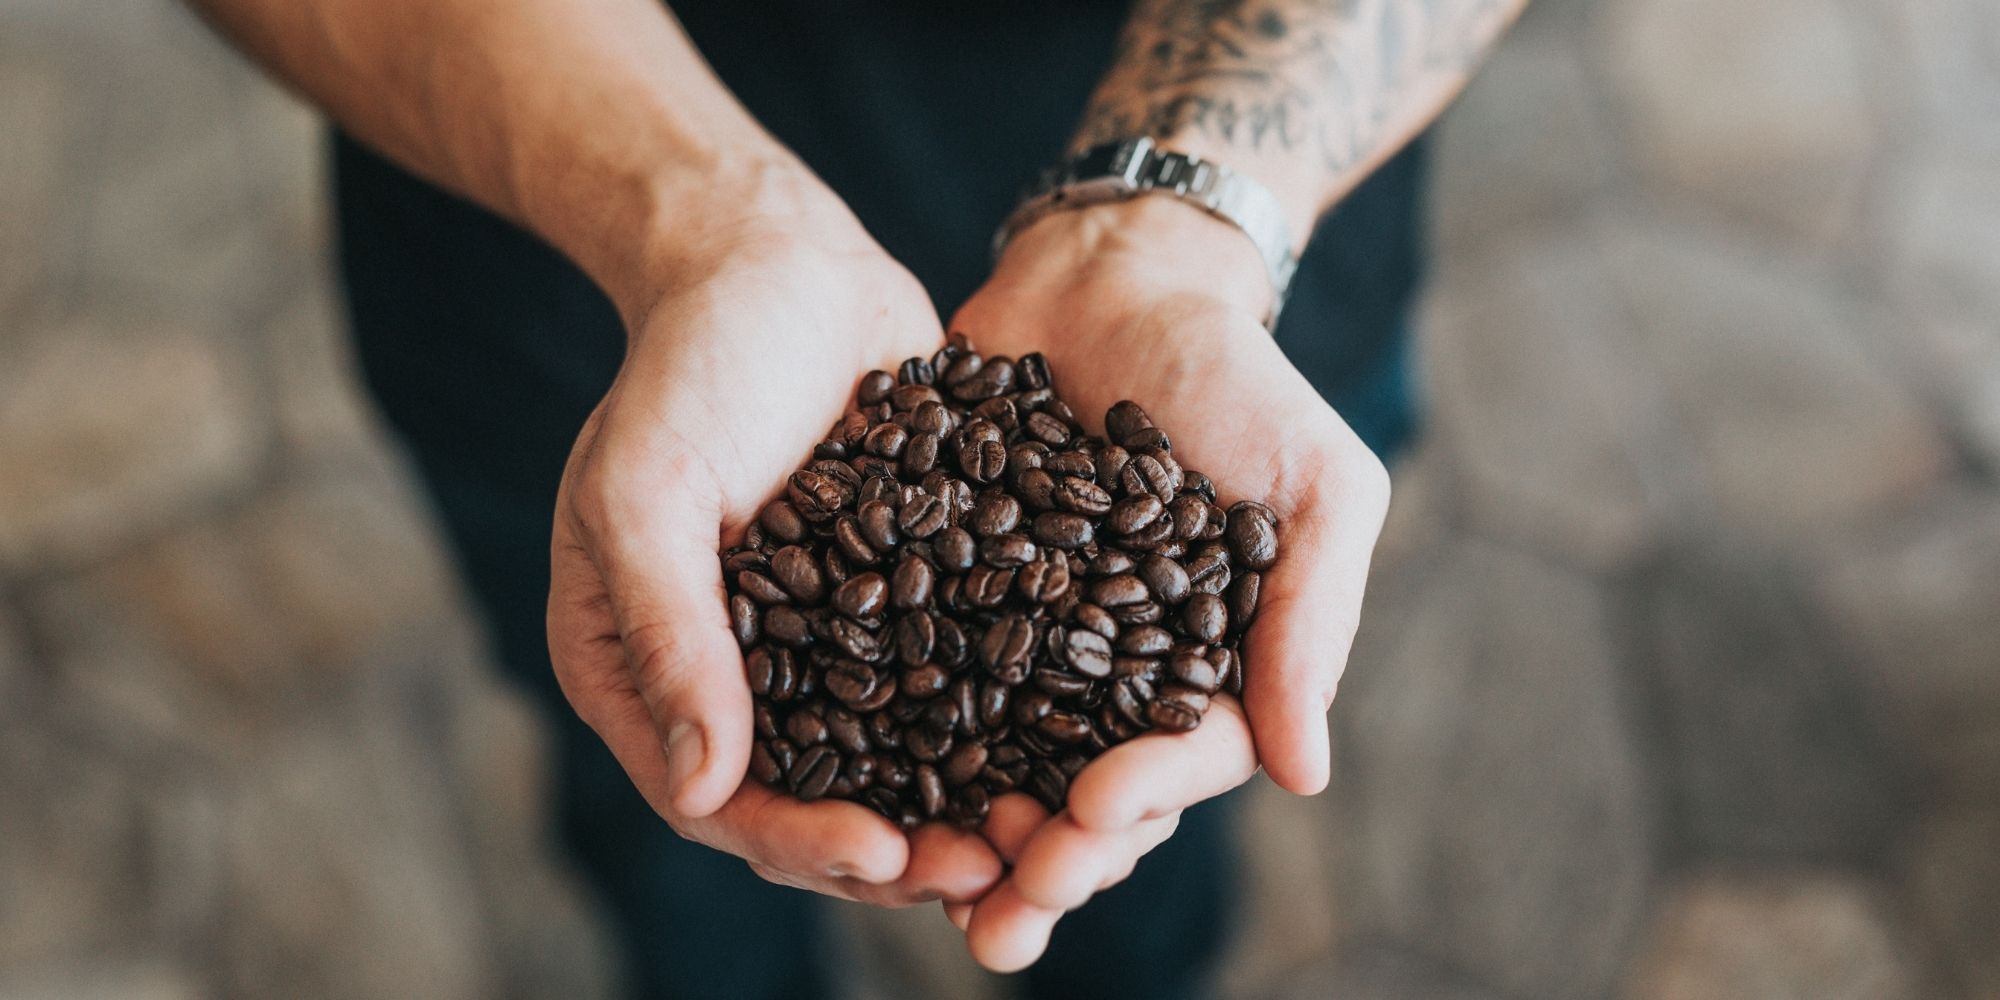 ethical coffee, coffee beans, specialty coffee